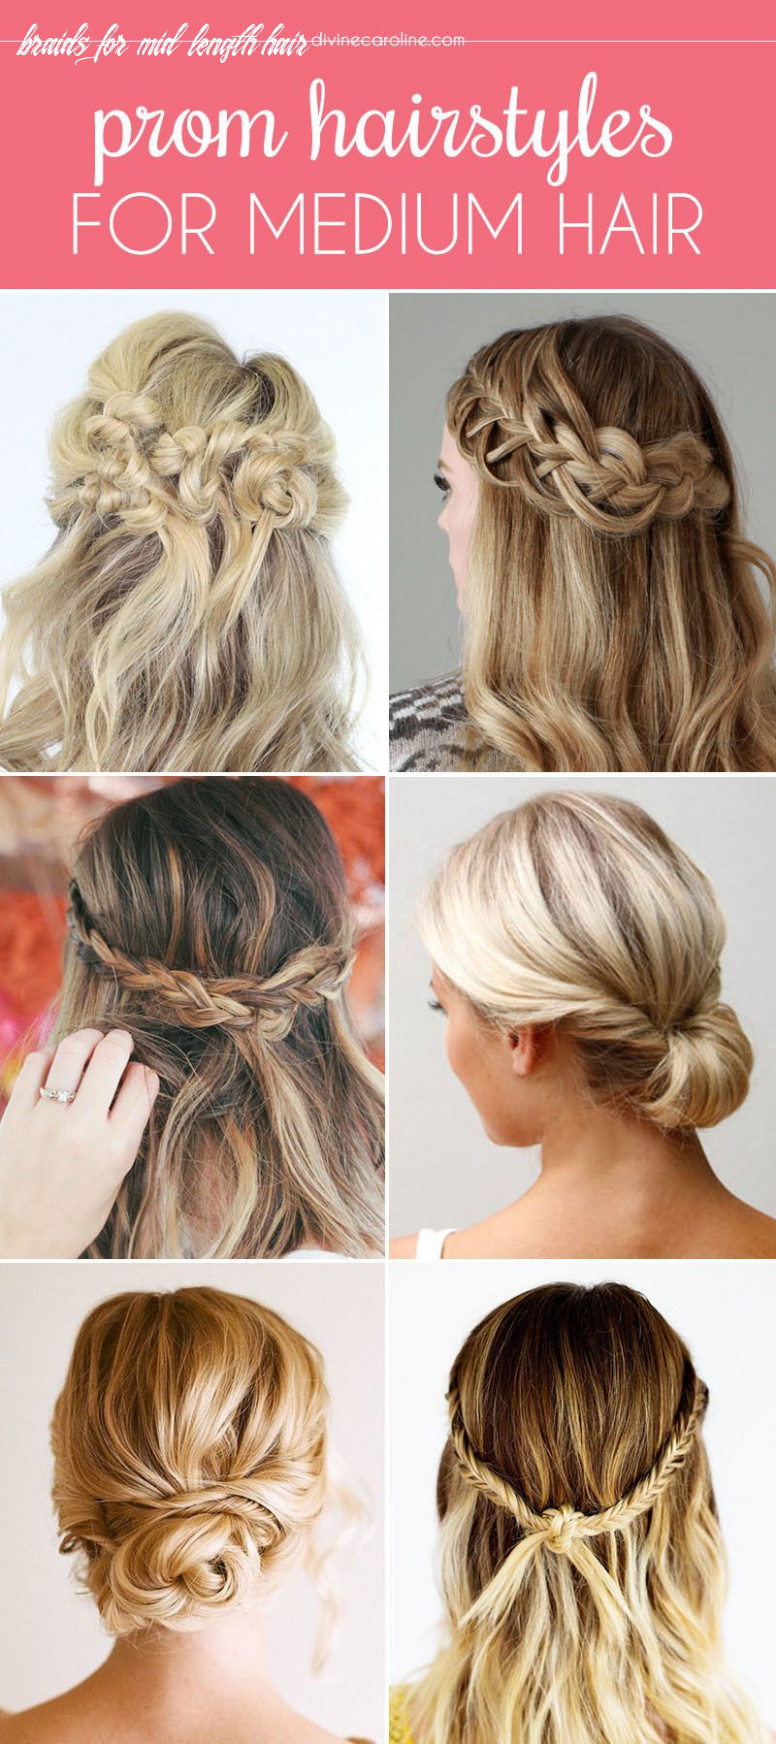 Our favorite prom hairstyles for medium length hair   prom hair